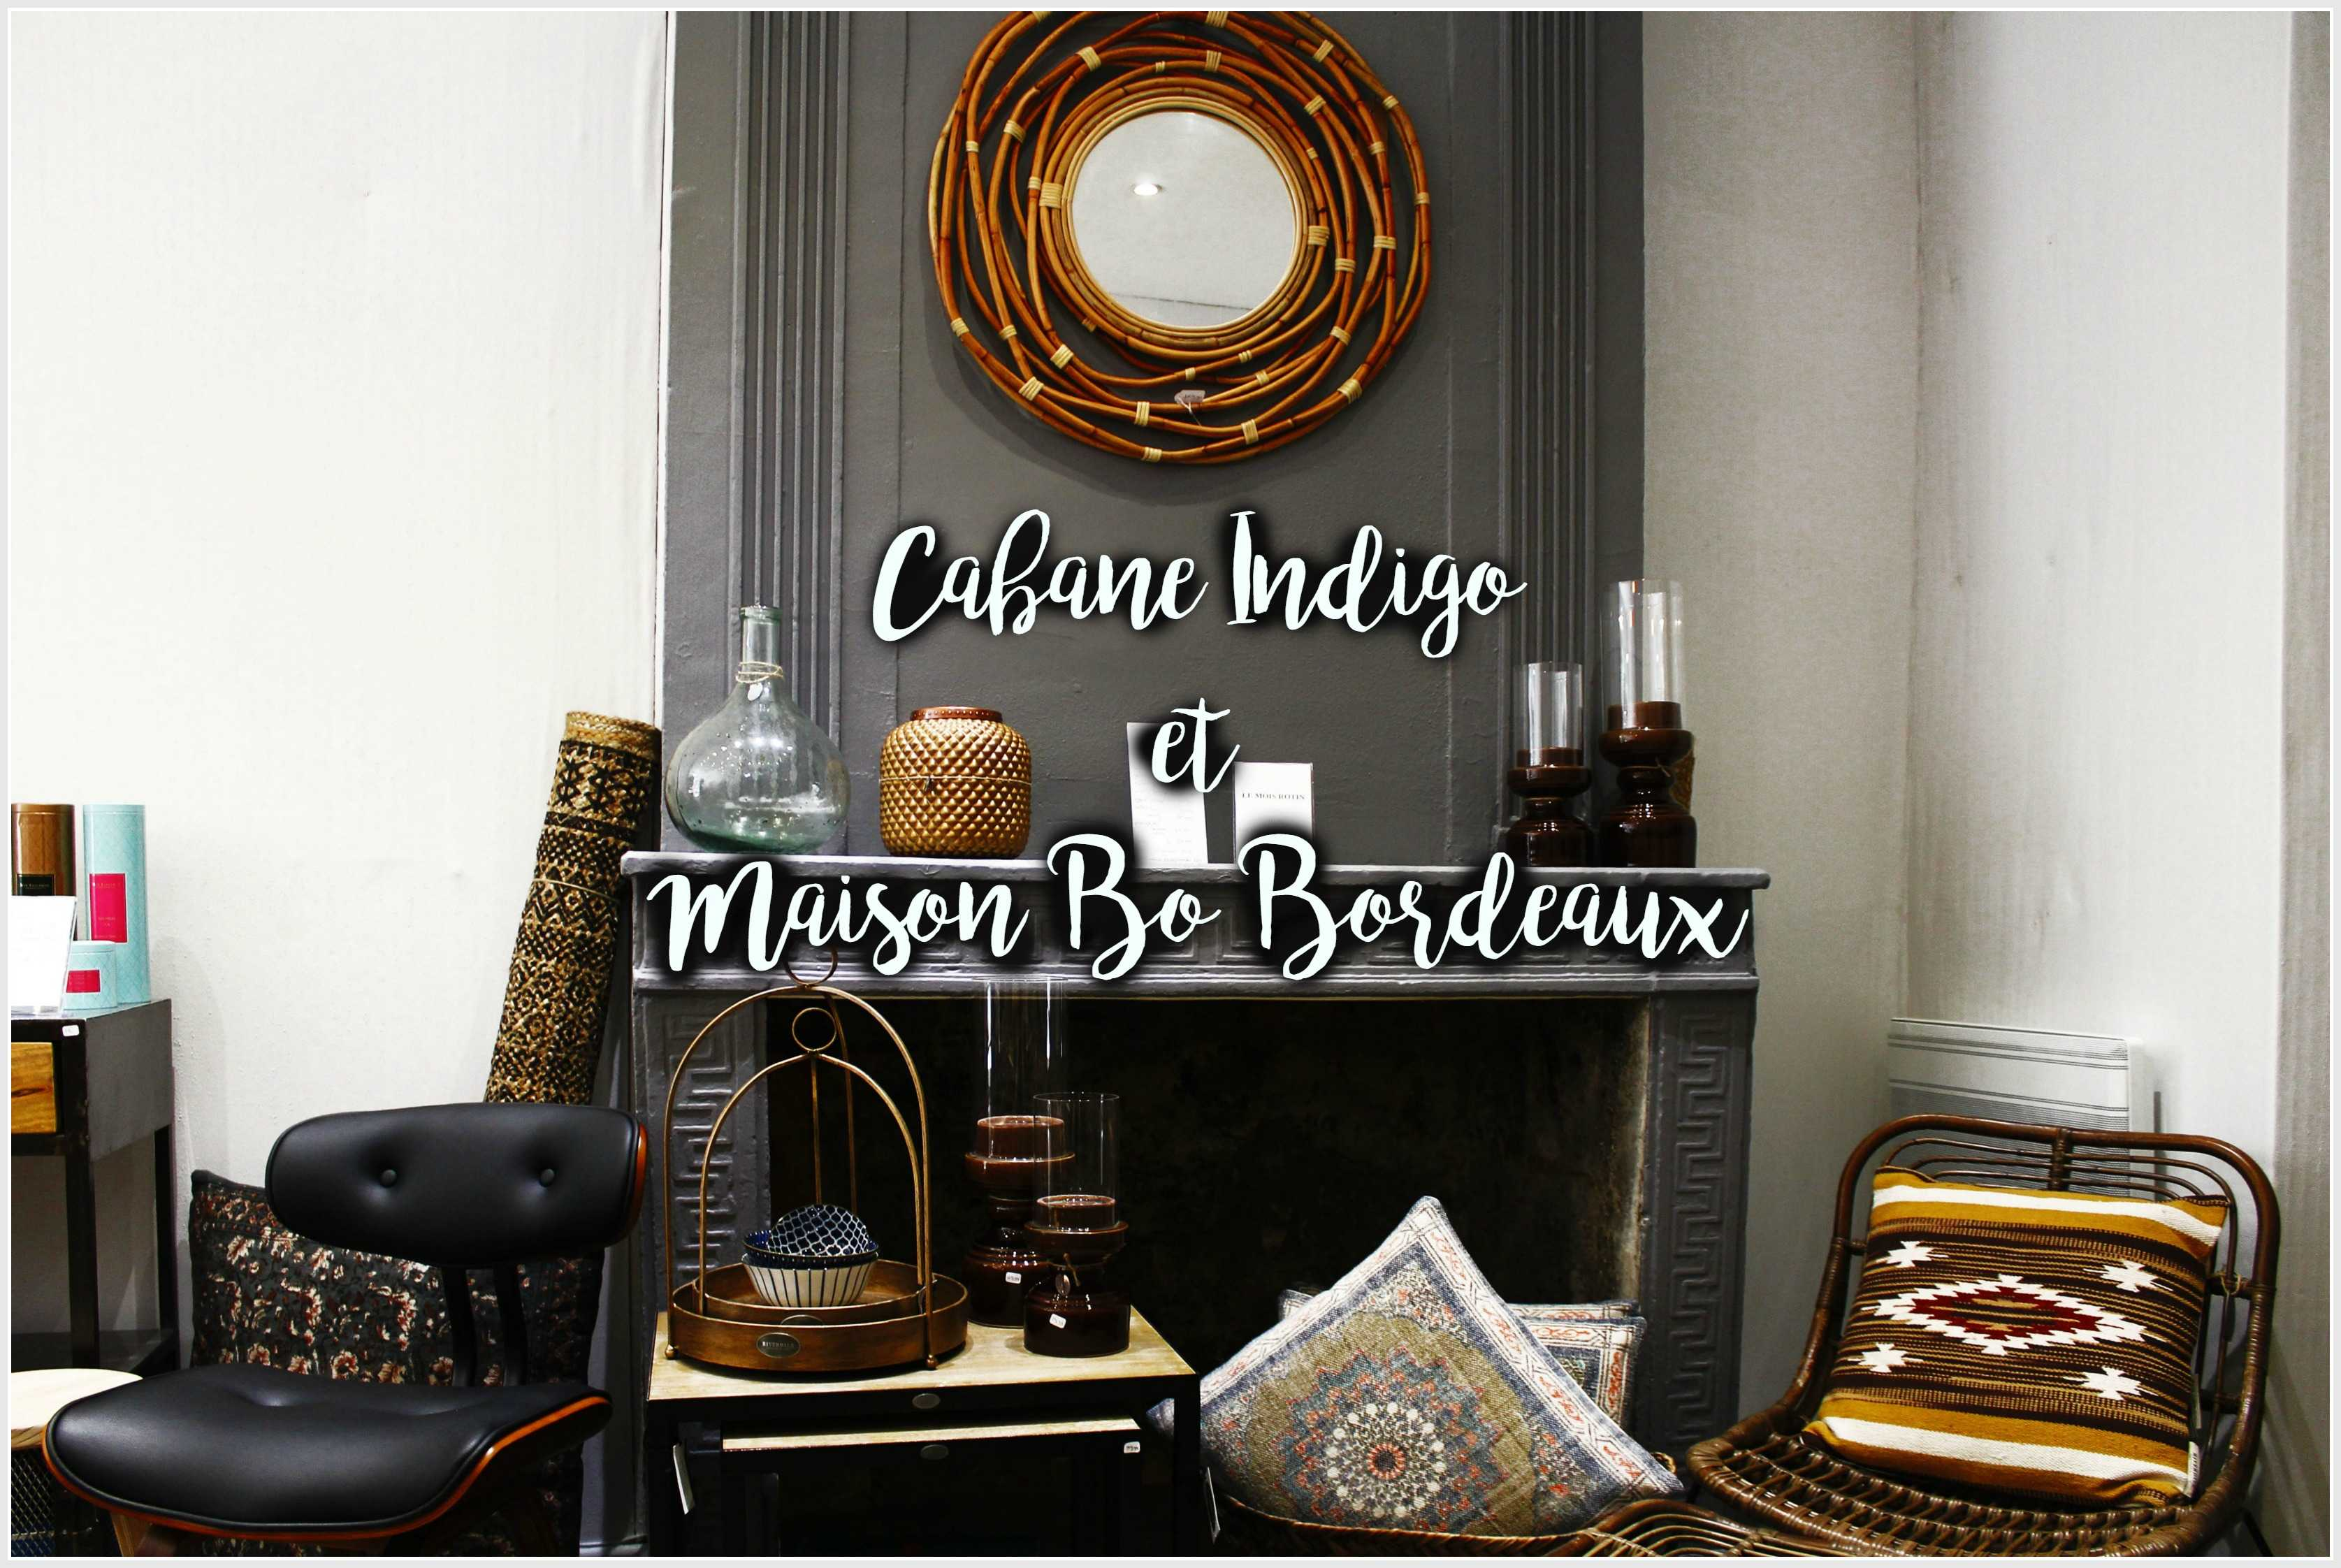 maison bo bordeaux et cabane indigo boutique deco bordeaux. Black Bedroom Furniture Sets. Home Design Ideas